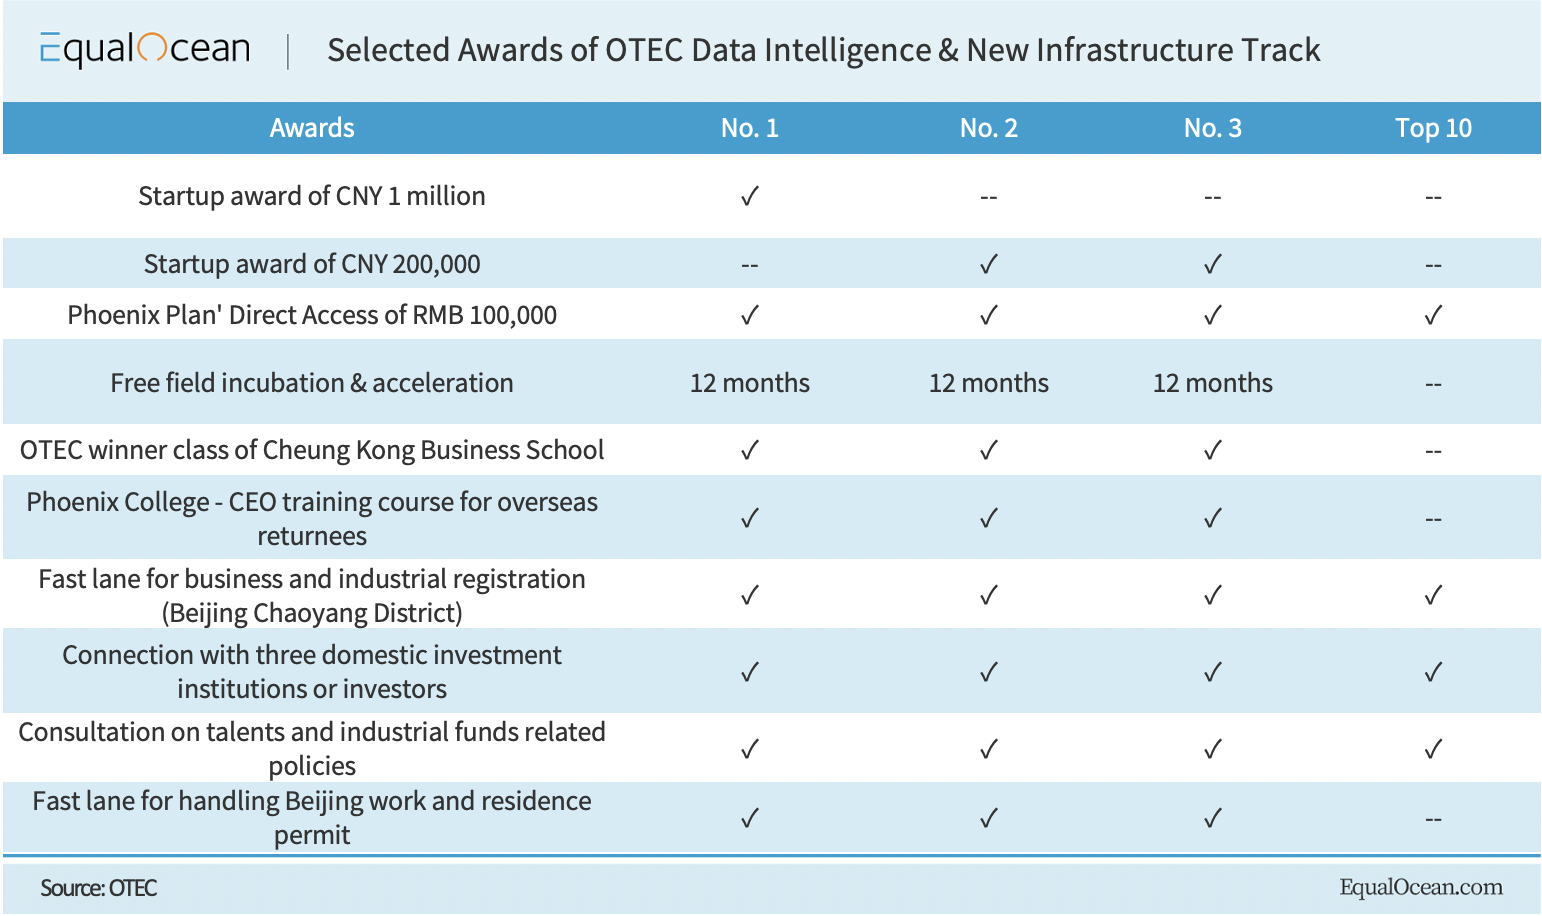 OTEC Awards